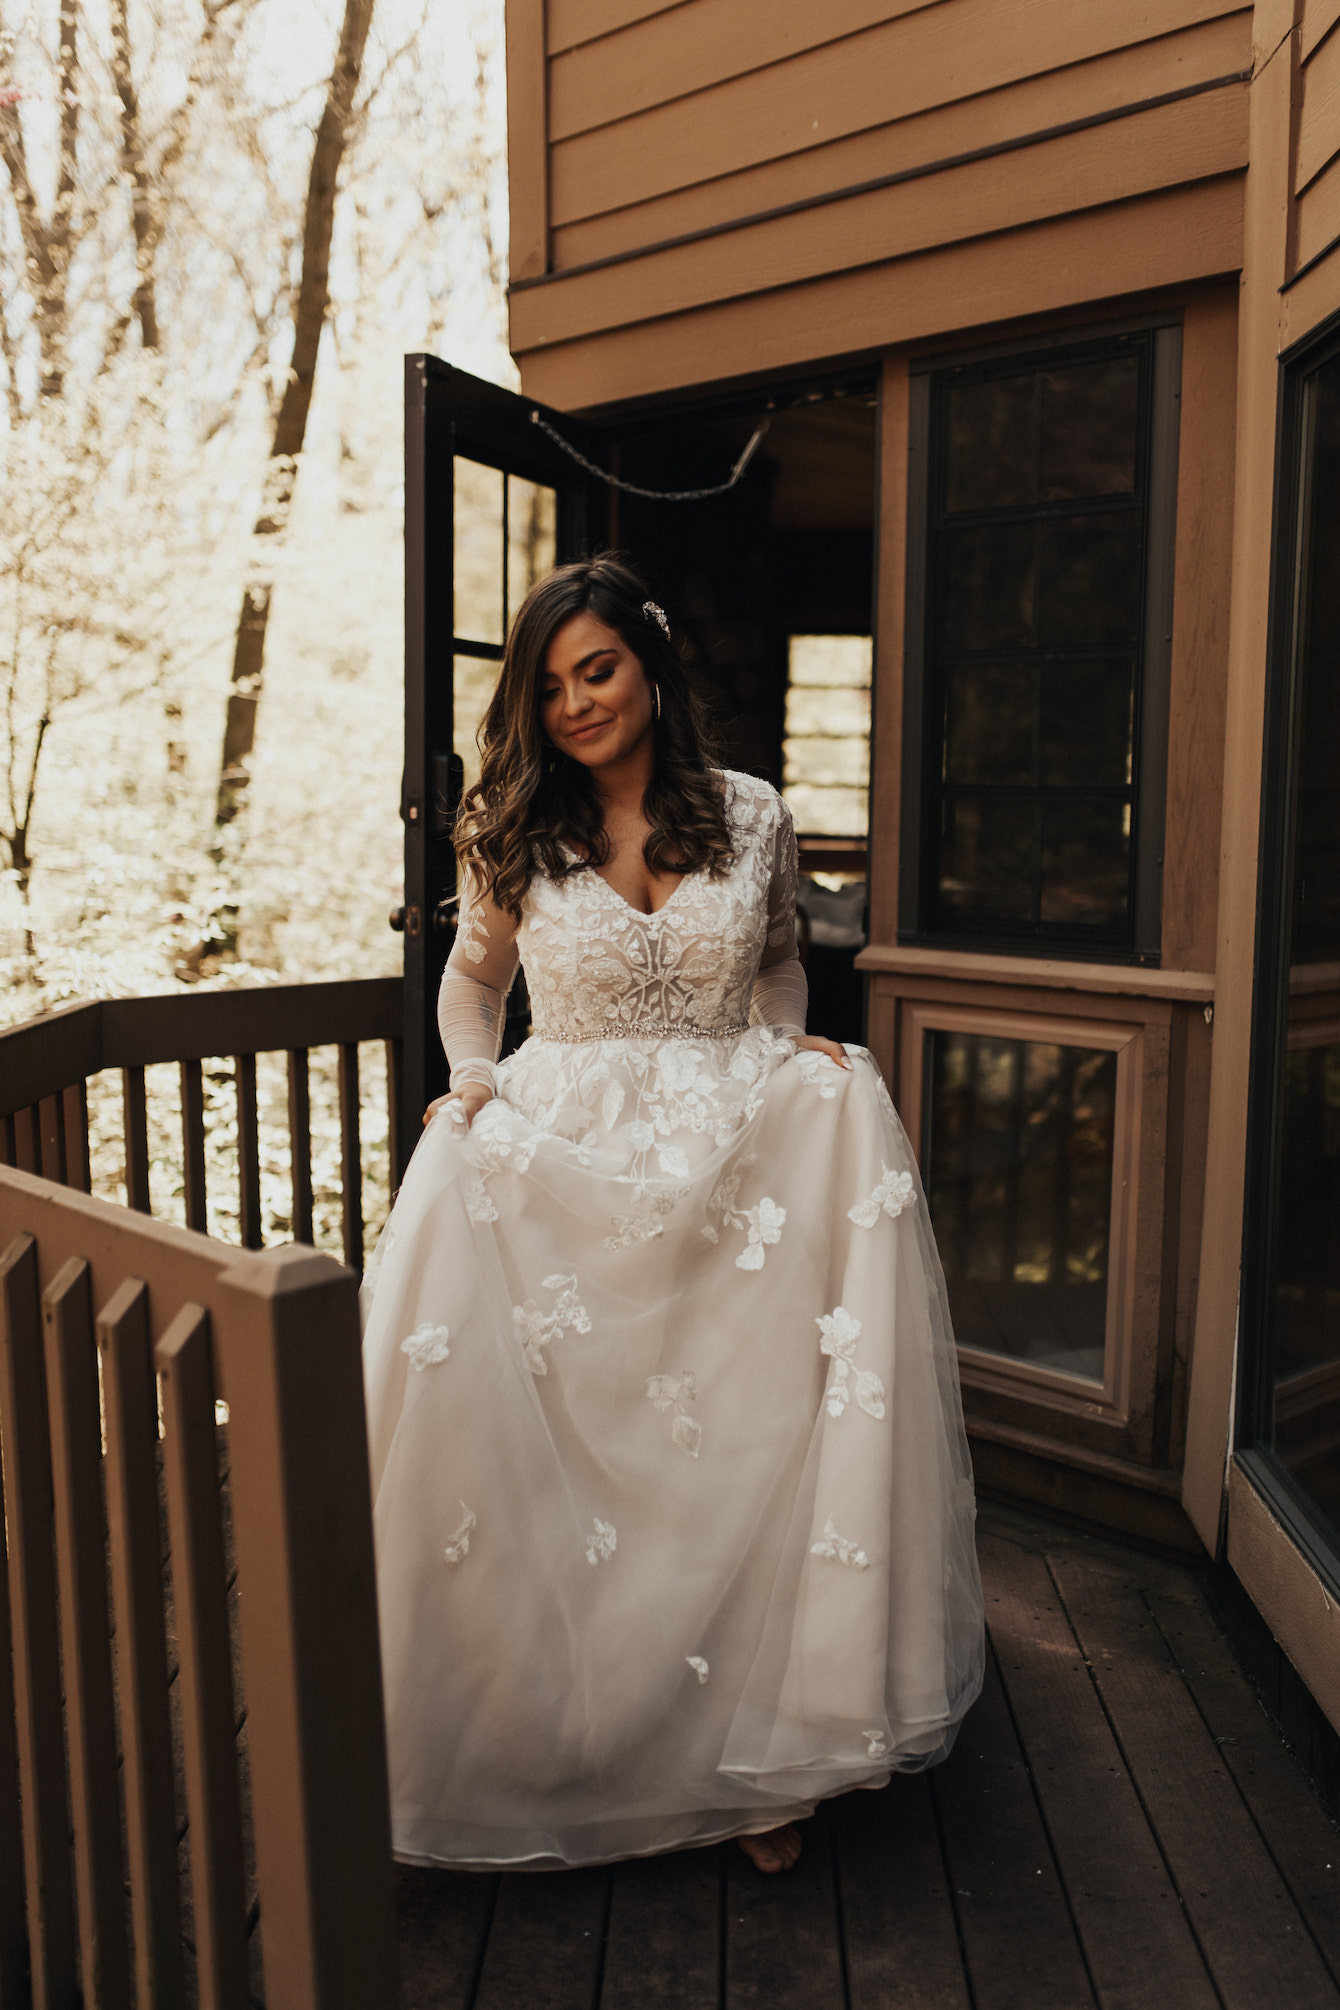 Solo bride leaving the house